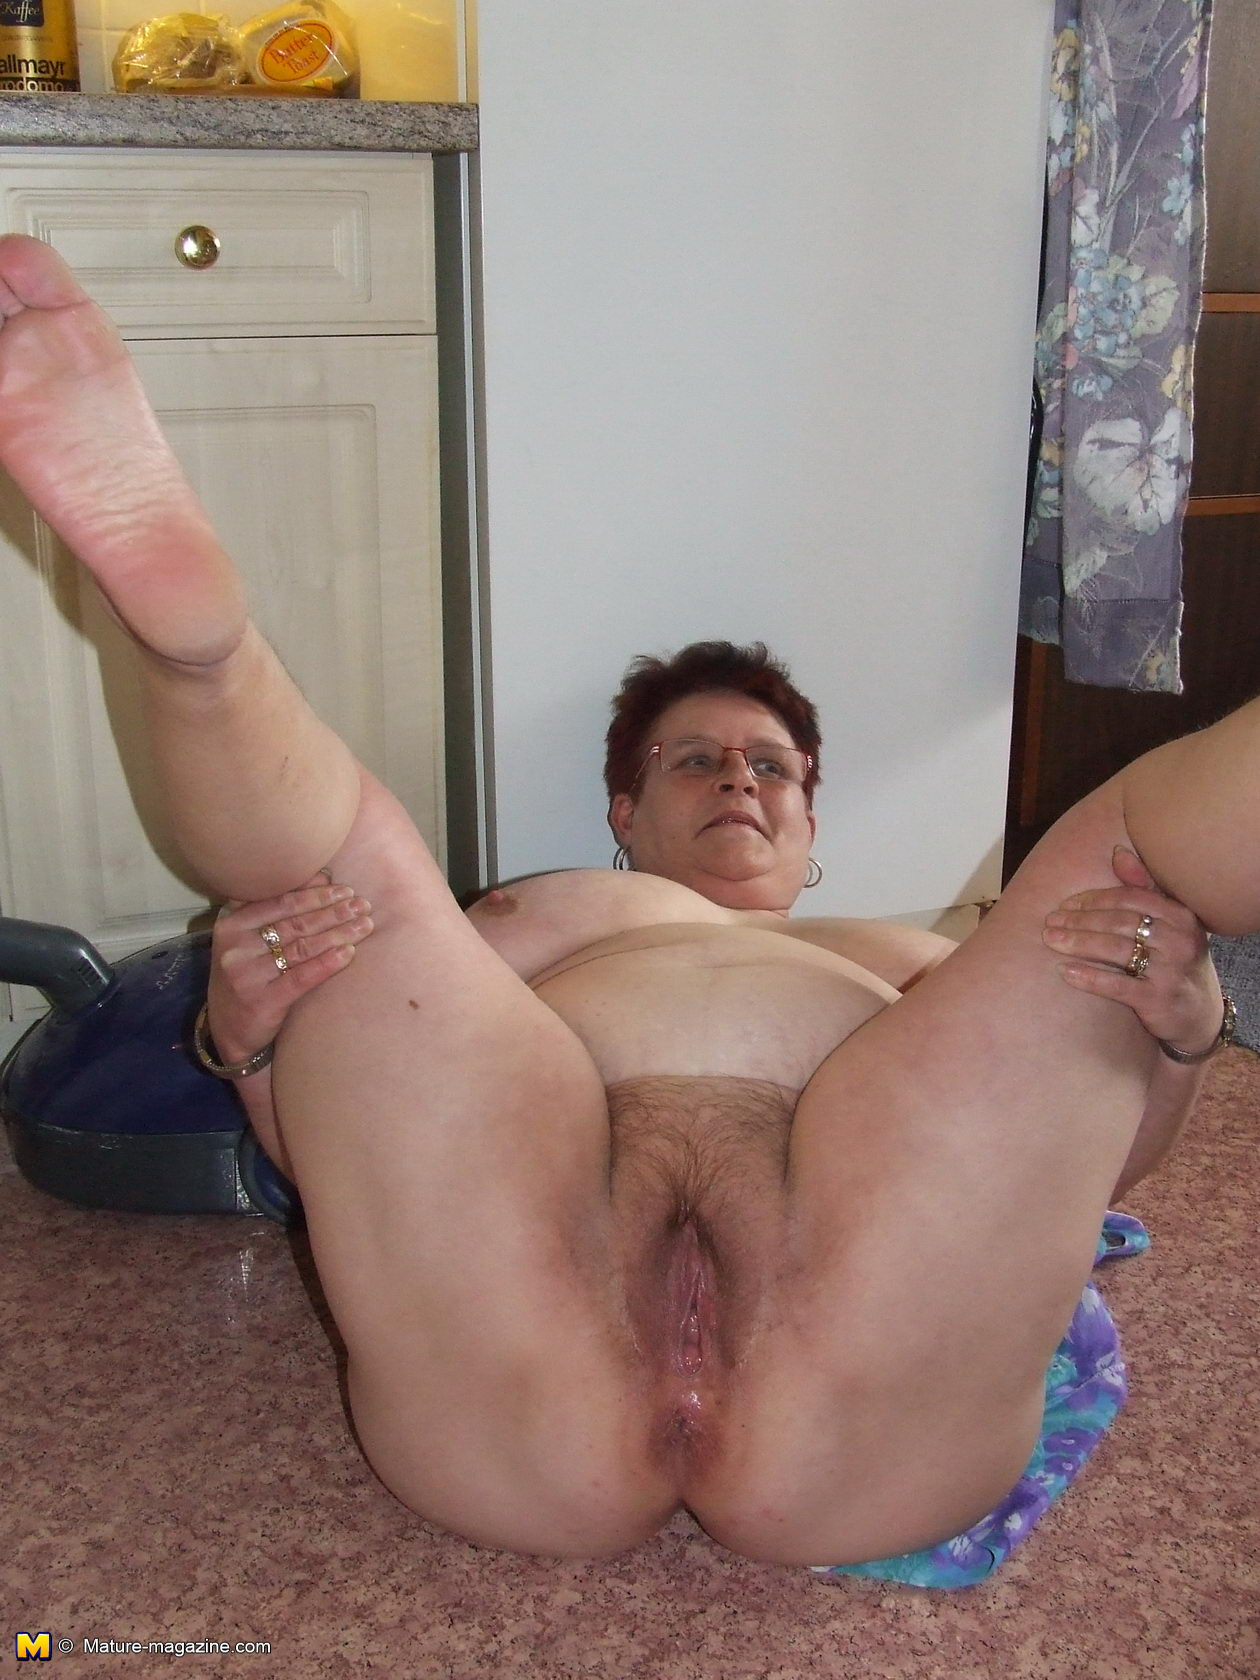 spread pussy pics mostly amateur - motherless